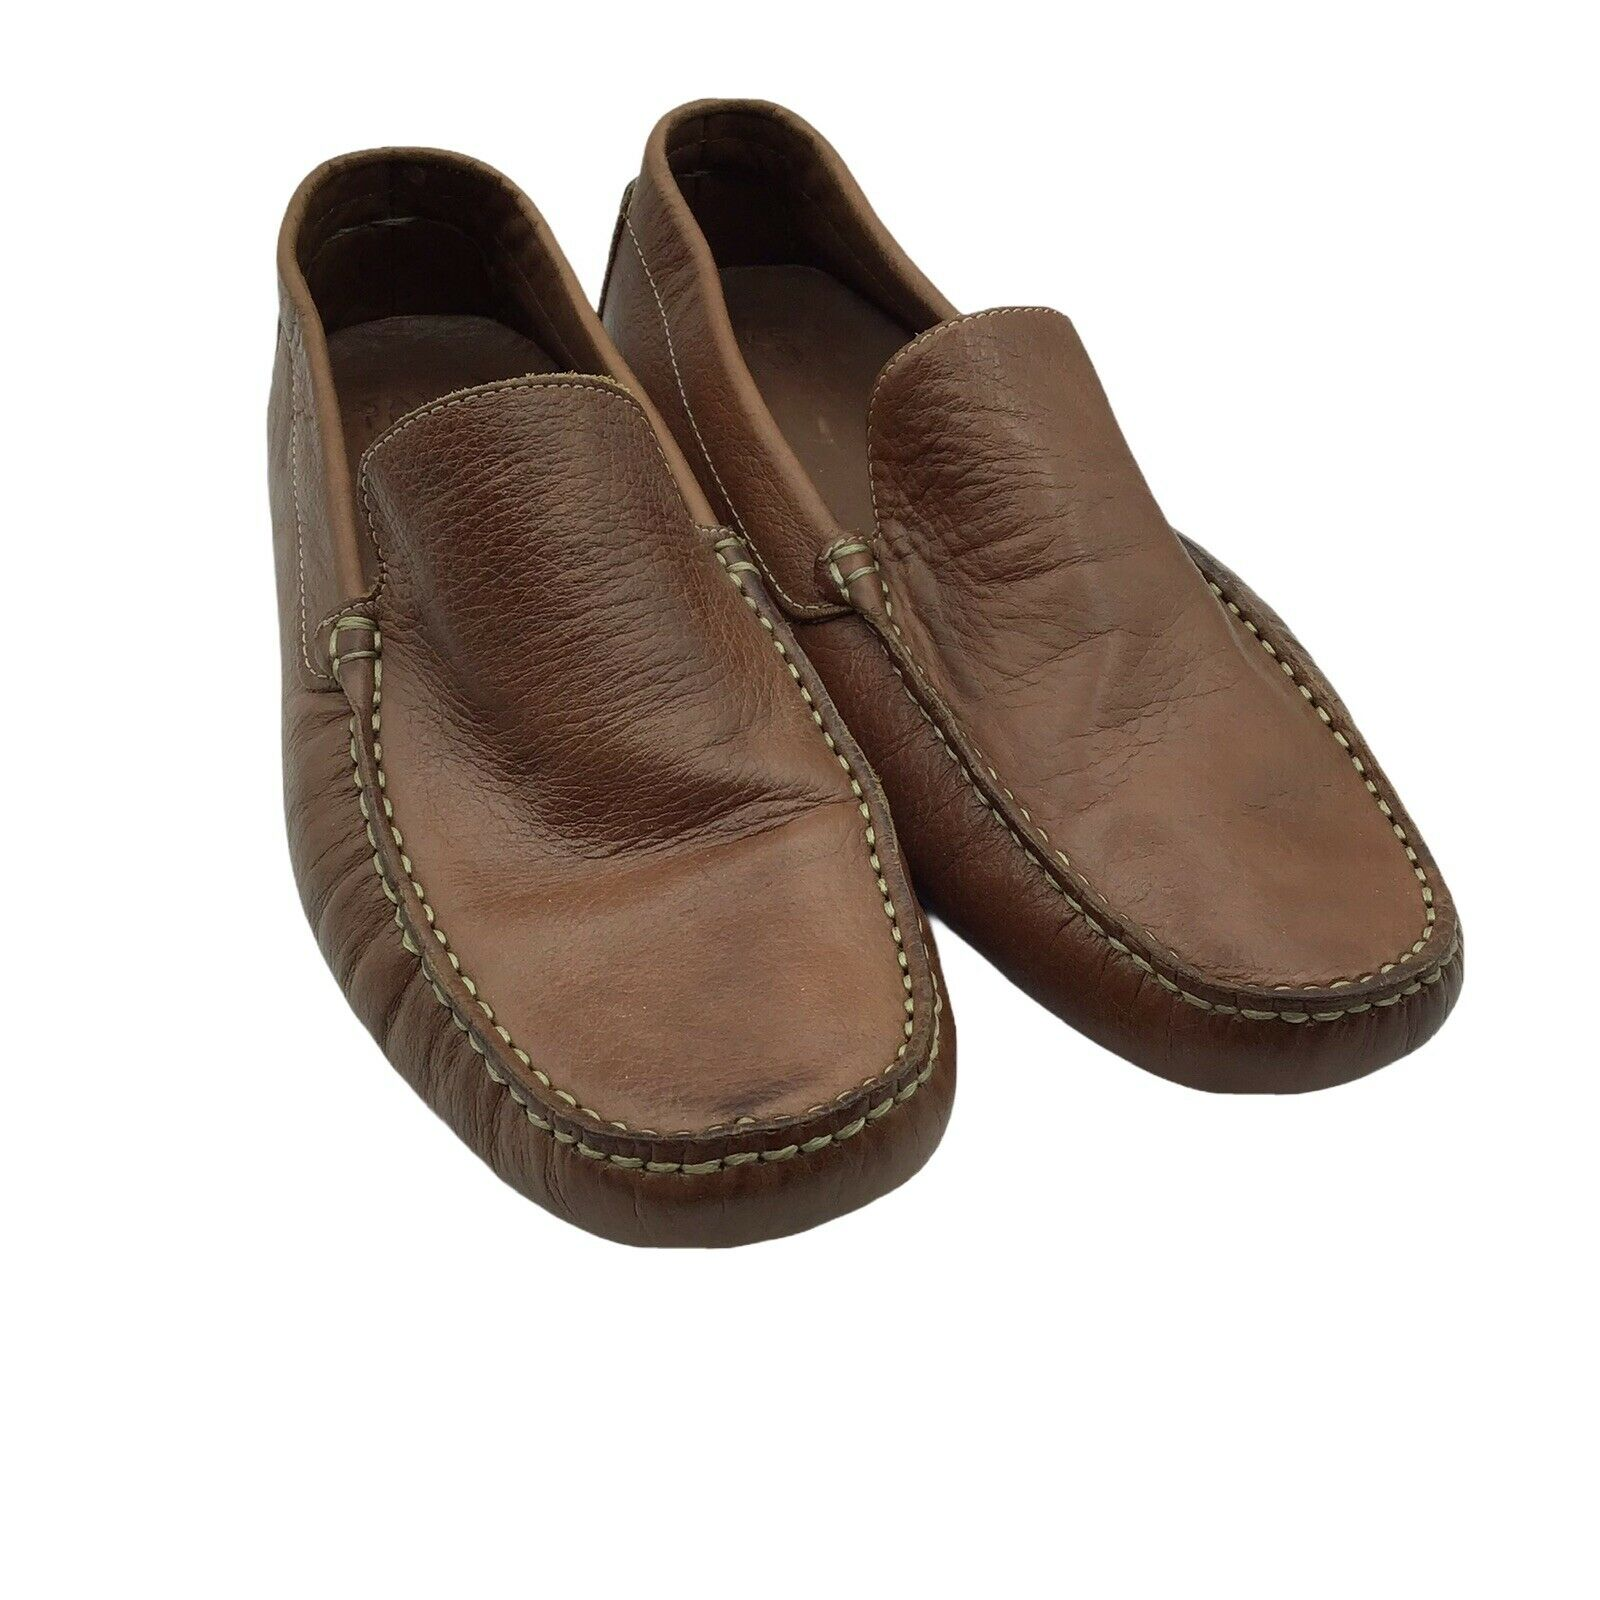 Saks Fifth Avenue Size 10M Driving Loafer Shoes Tan Leather Moc Toe Slip-Ons